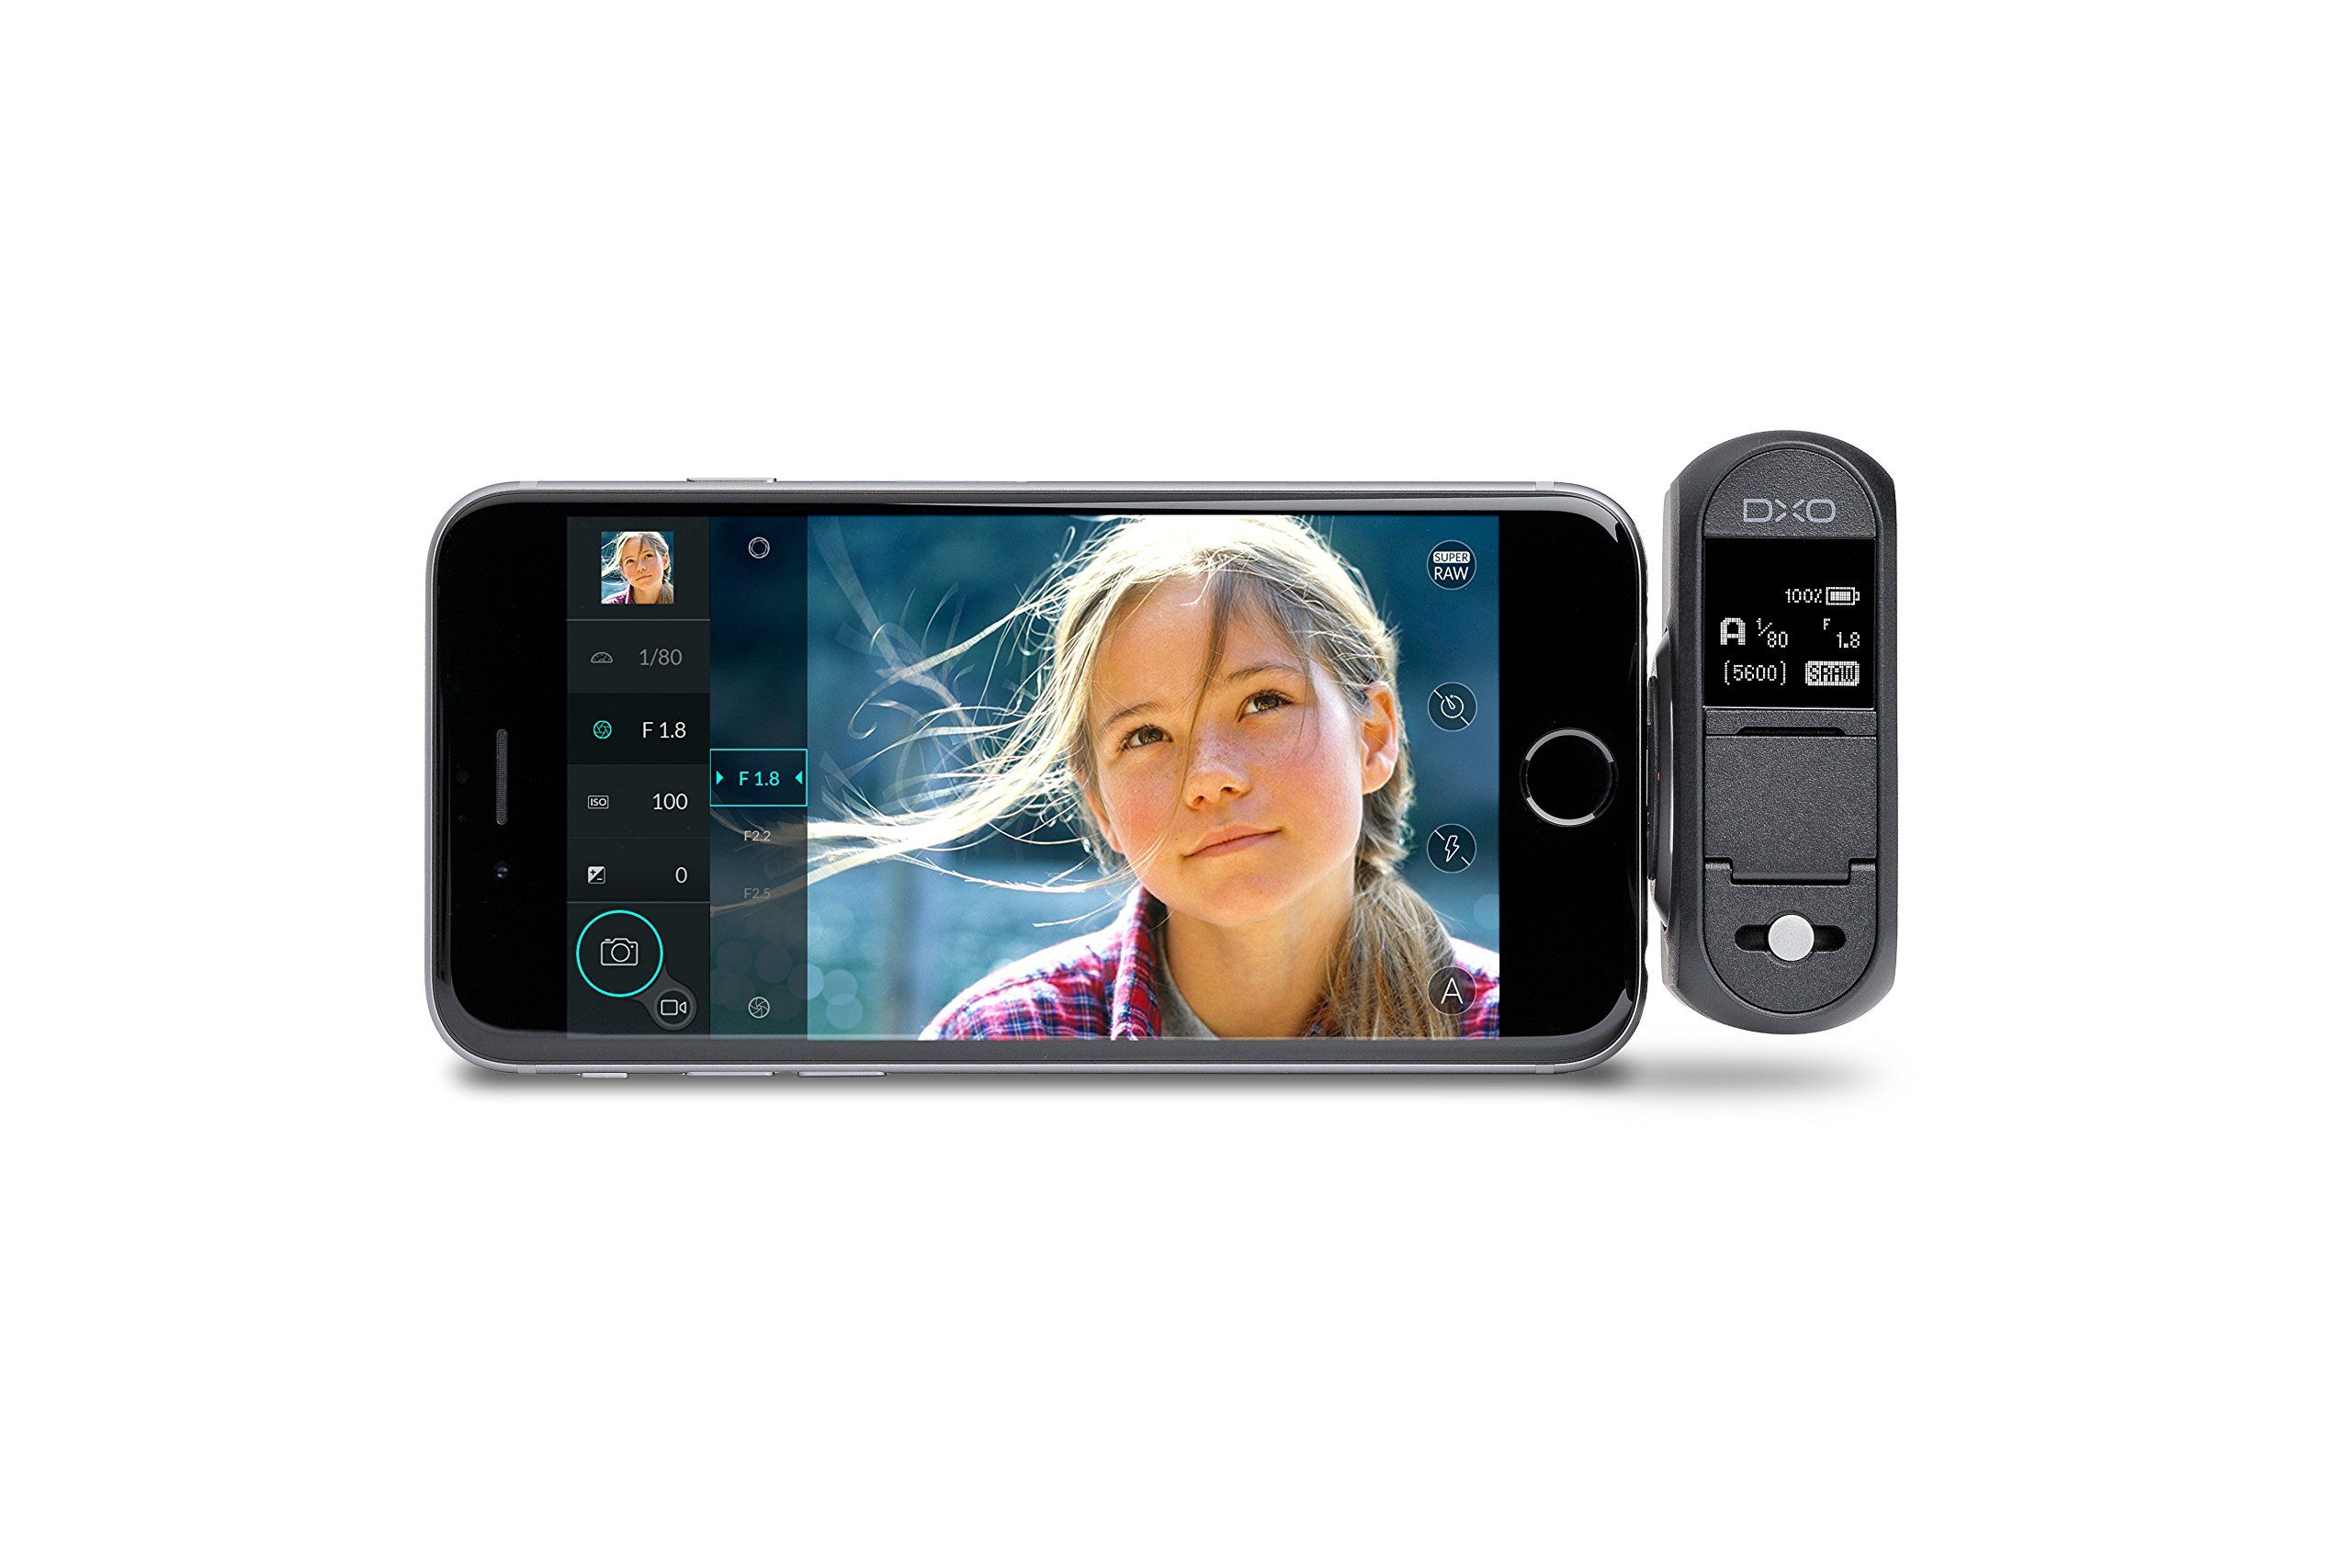 DxO ONE 20.2MP Digital Connected Camera for iPhone and iPad - See more at: http://photo.florentta.com/camera-photo-video/digital-cameras/dxo-one-202mp-digital-connected-camera-for-iphone-and-ipad-com/